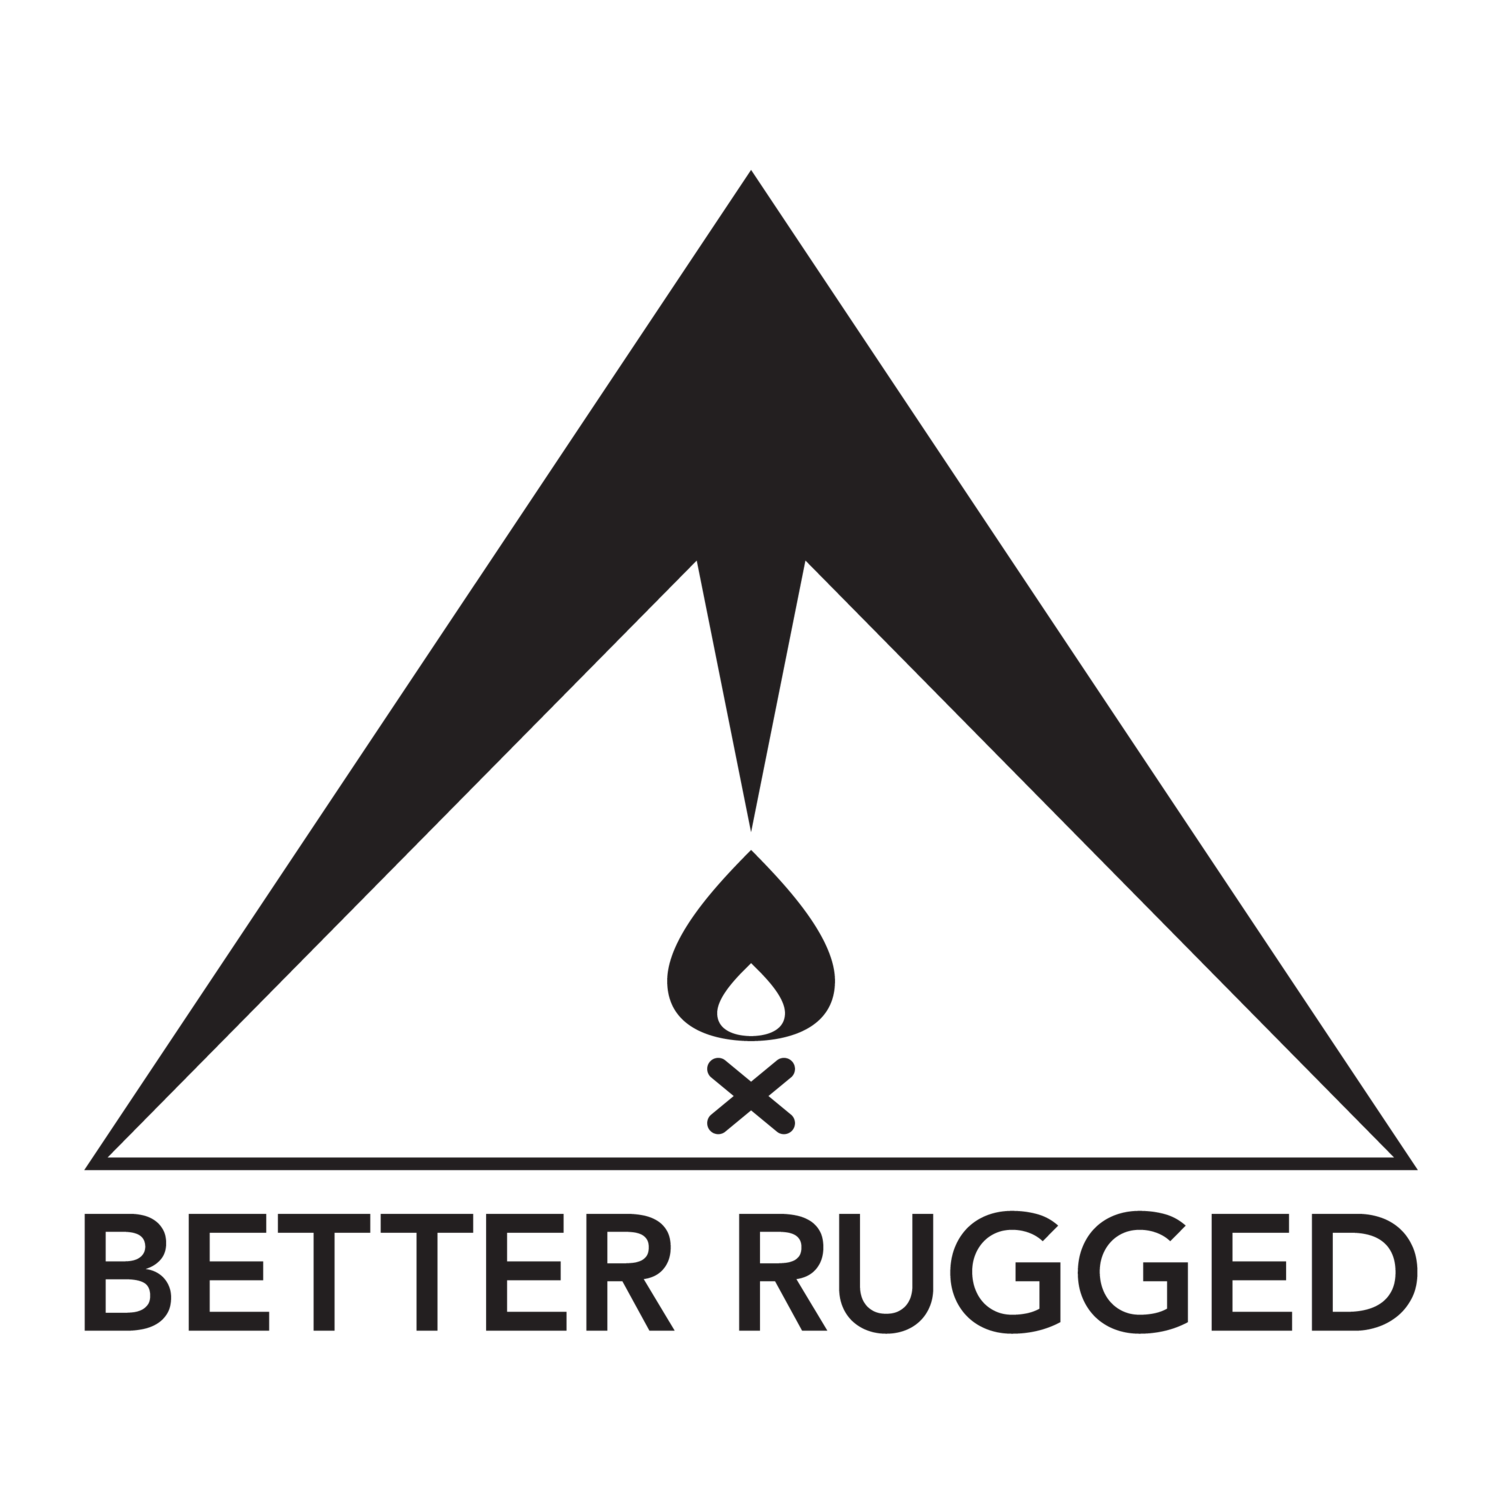 BETTER RUGGED